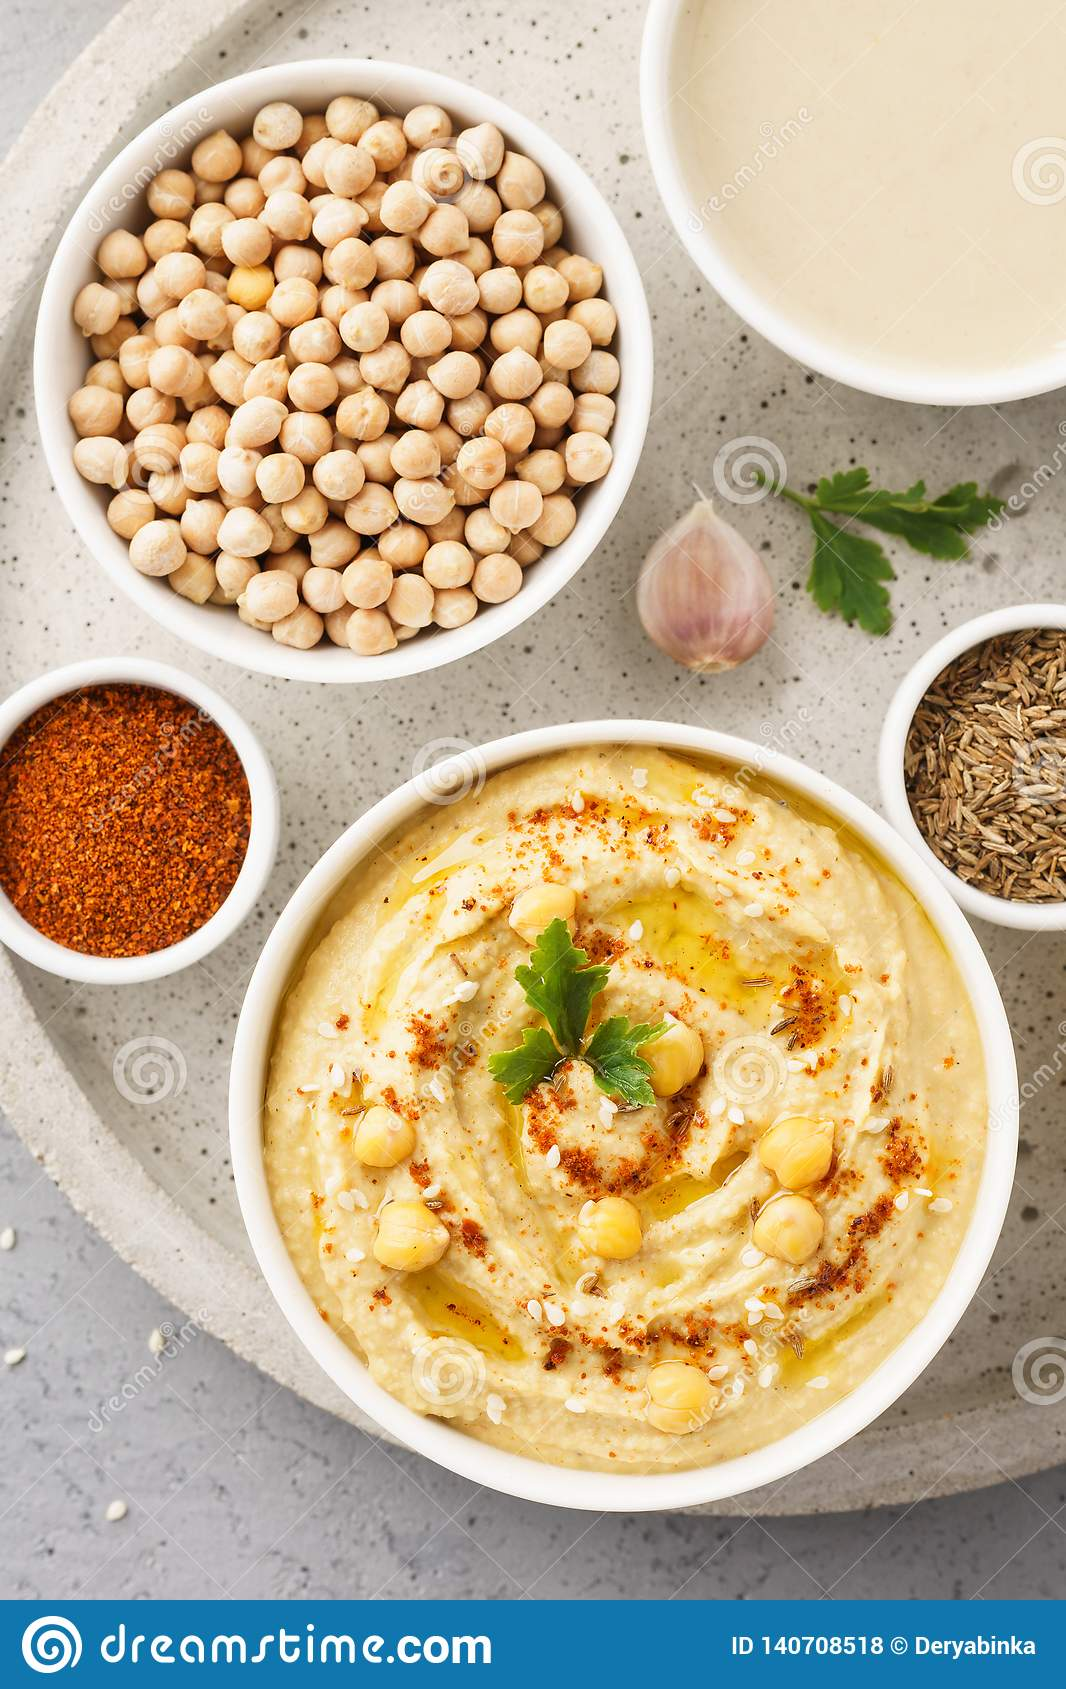 Hummus Bowl And Raw Ingredients For Cooking Stock Photo